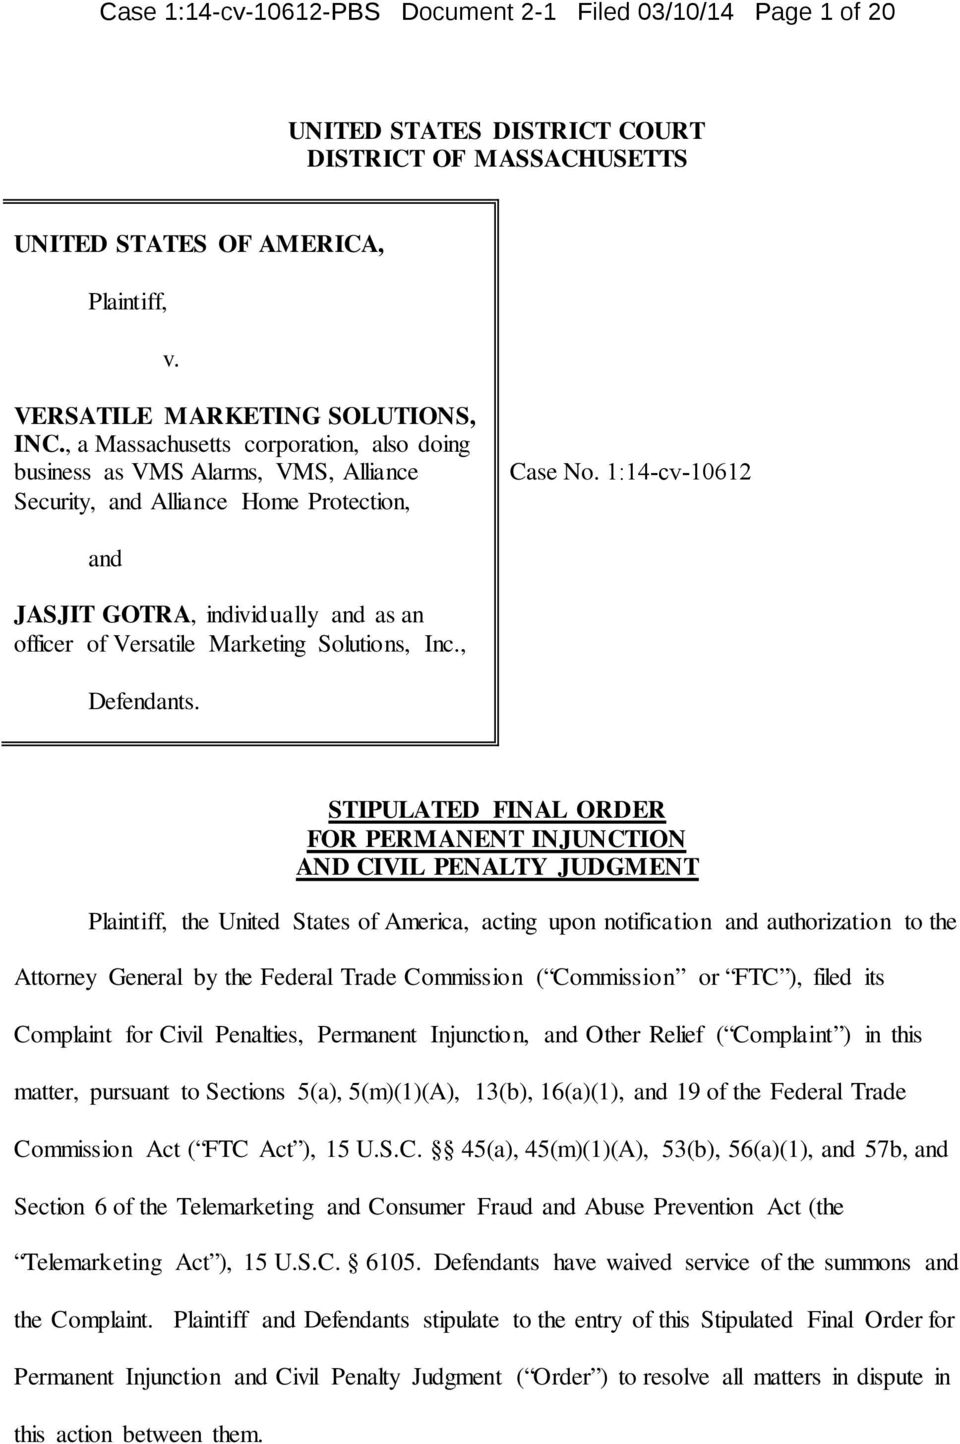 1:14-cv-10612 and JASJIT GOTRA, individually and as an officer of Versatile Marketing Solutions, Inc., Defendants.